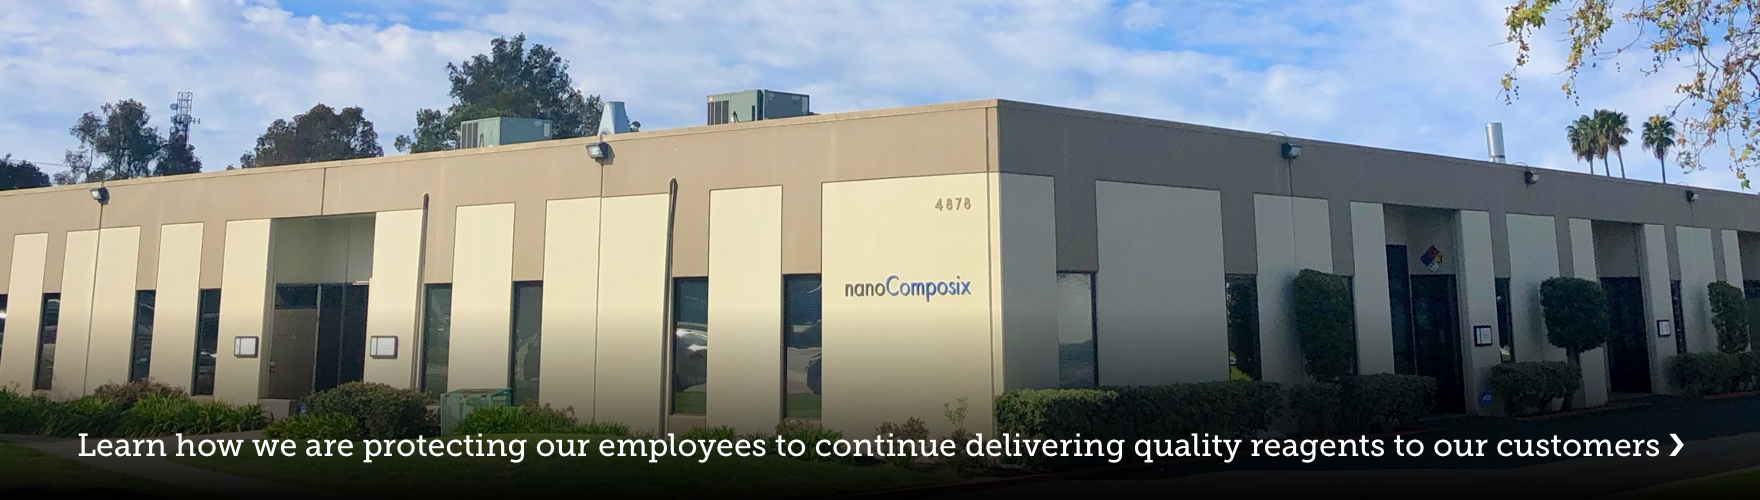 Learn how we are protecting our employees to continue delivering quality reagents to our customers